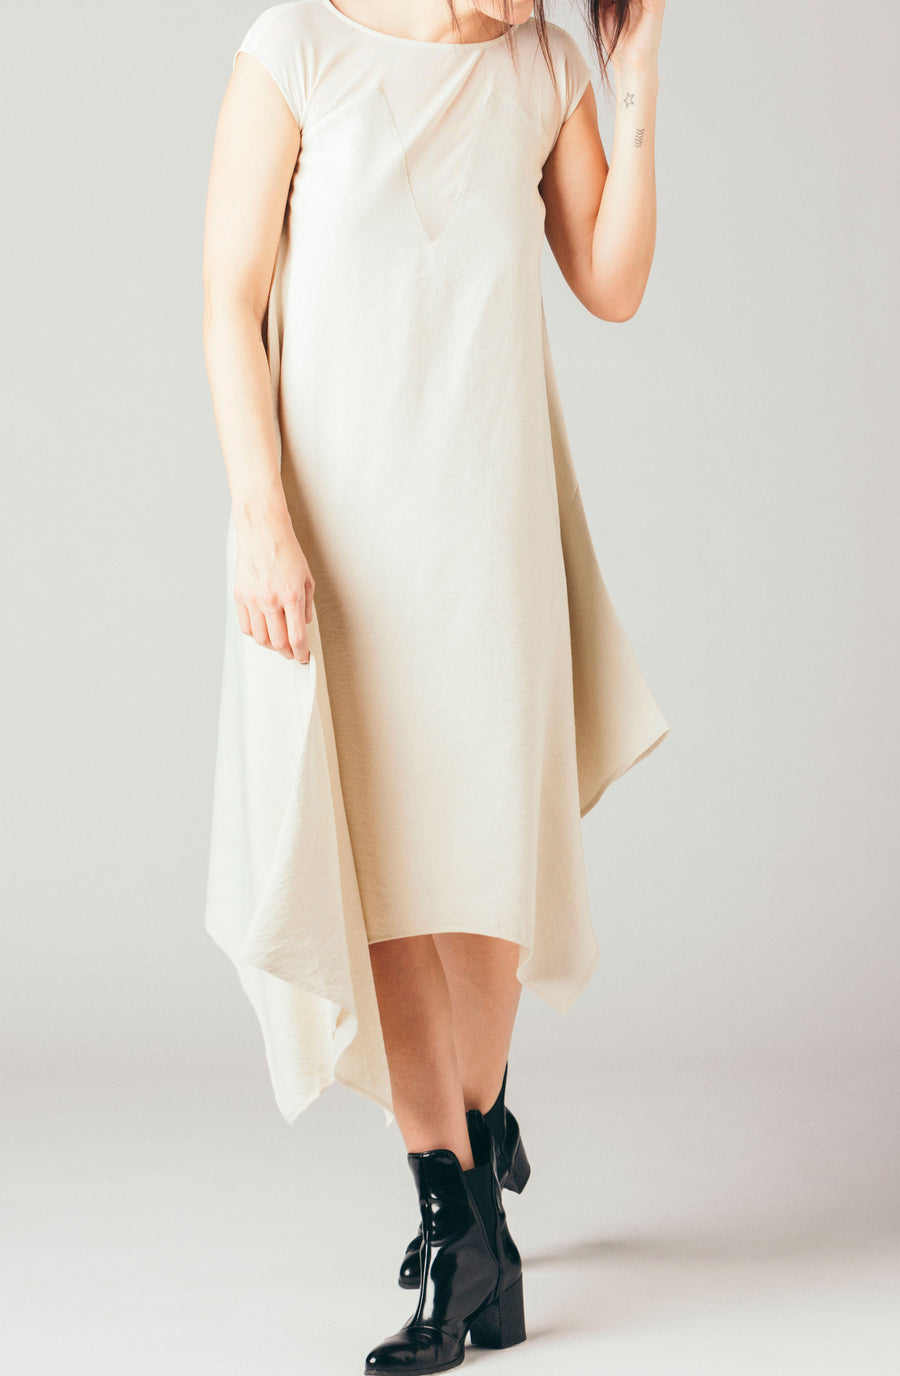 The Coverii ivory, cream linen blend dress with sheer shoulder v-neck, uneven sharkbite hem and backless mesh top.